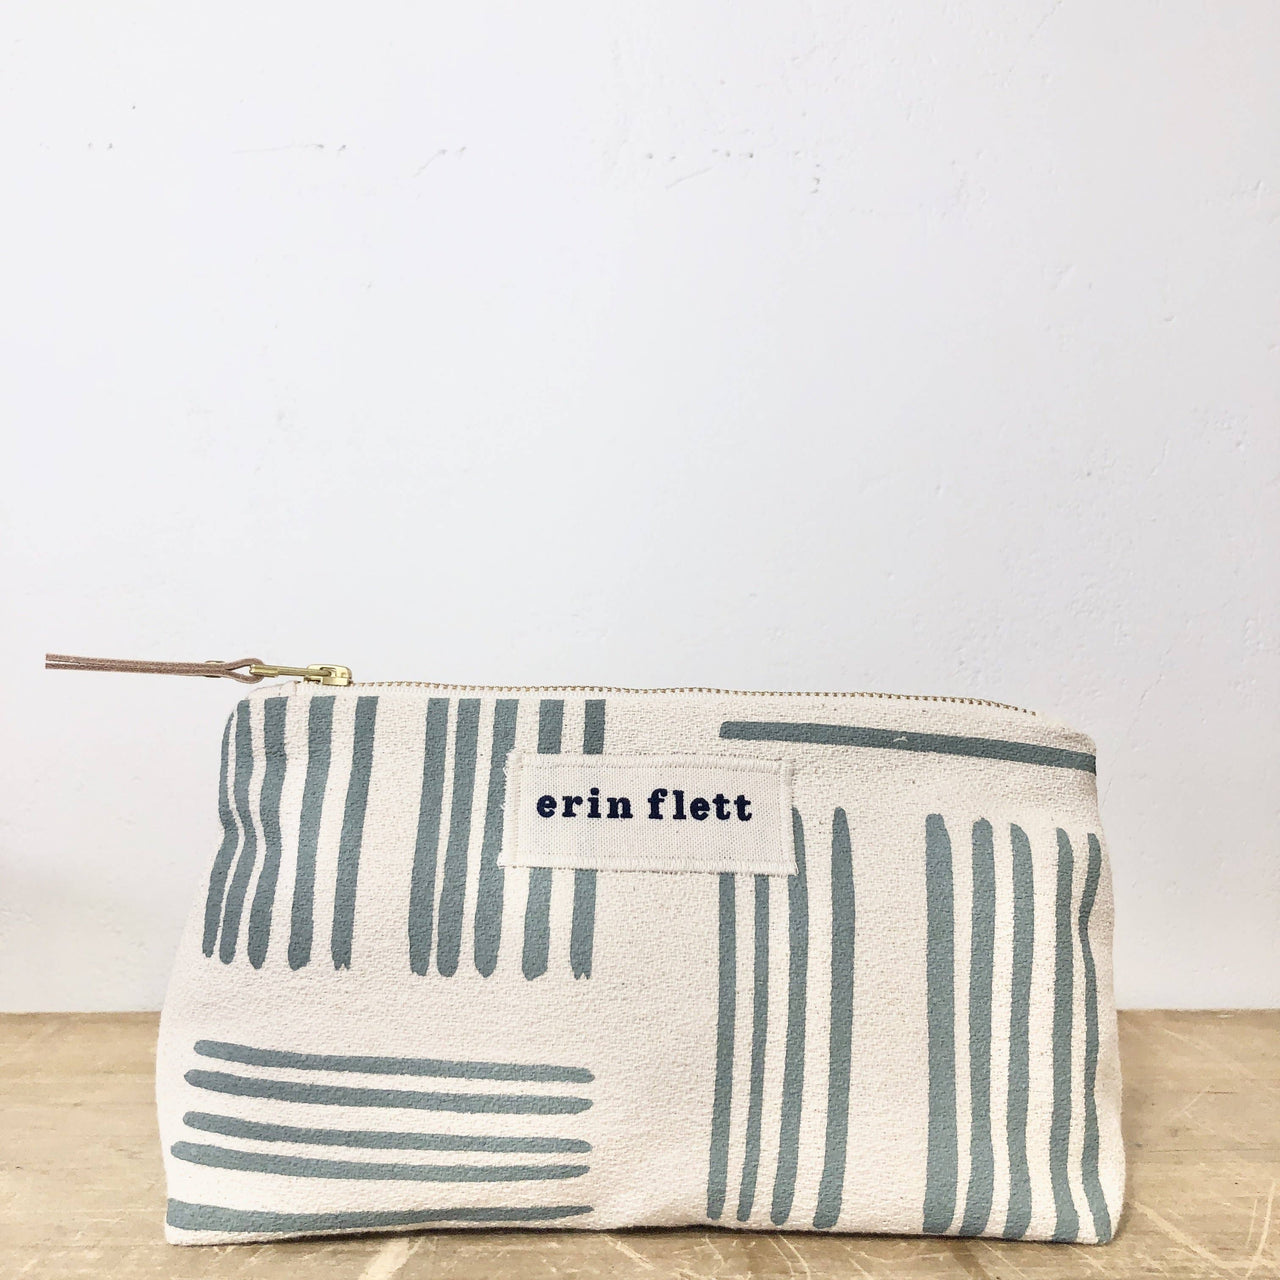 Slate Brush Makeup Zipper Bag